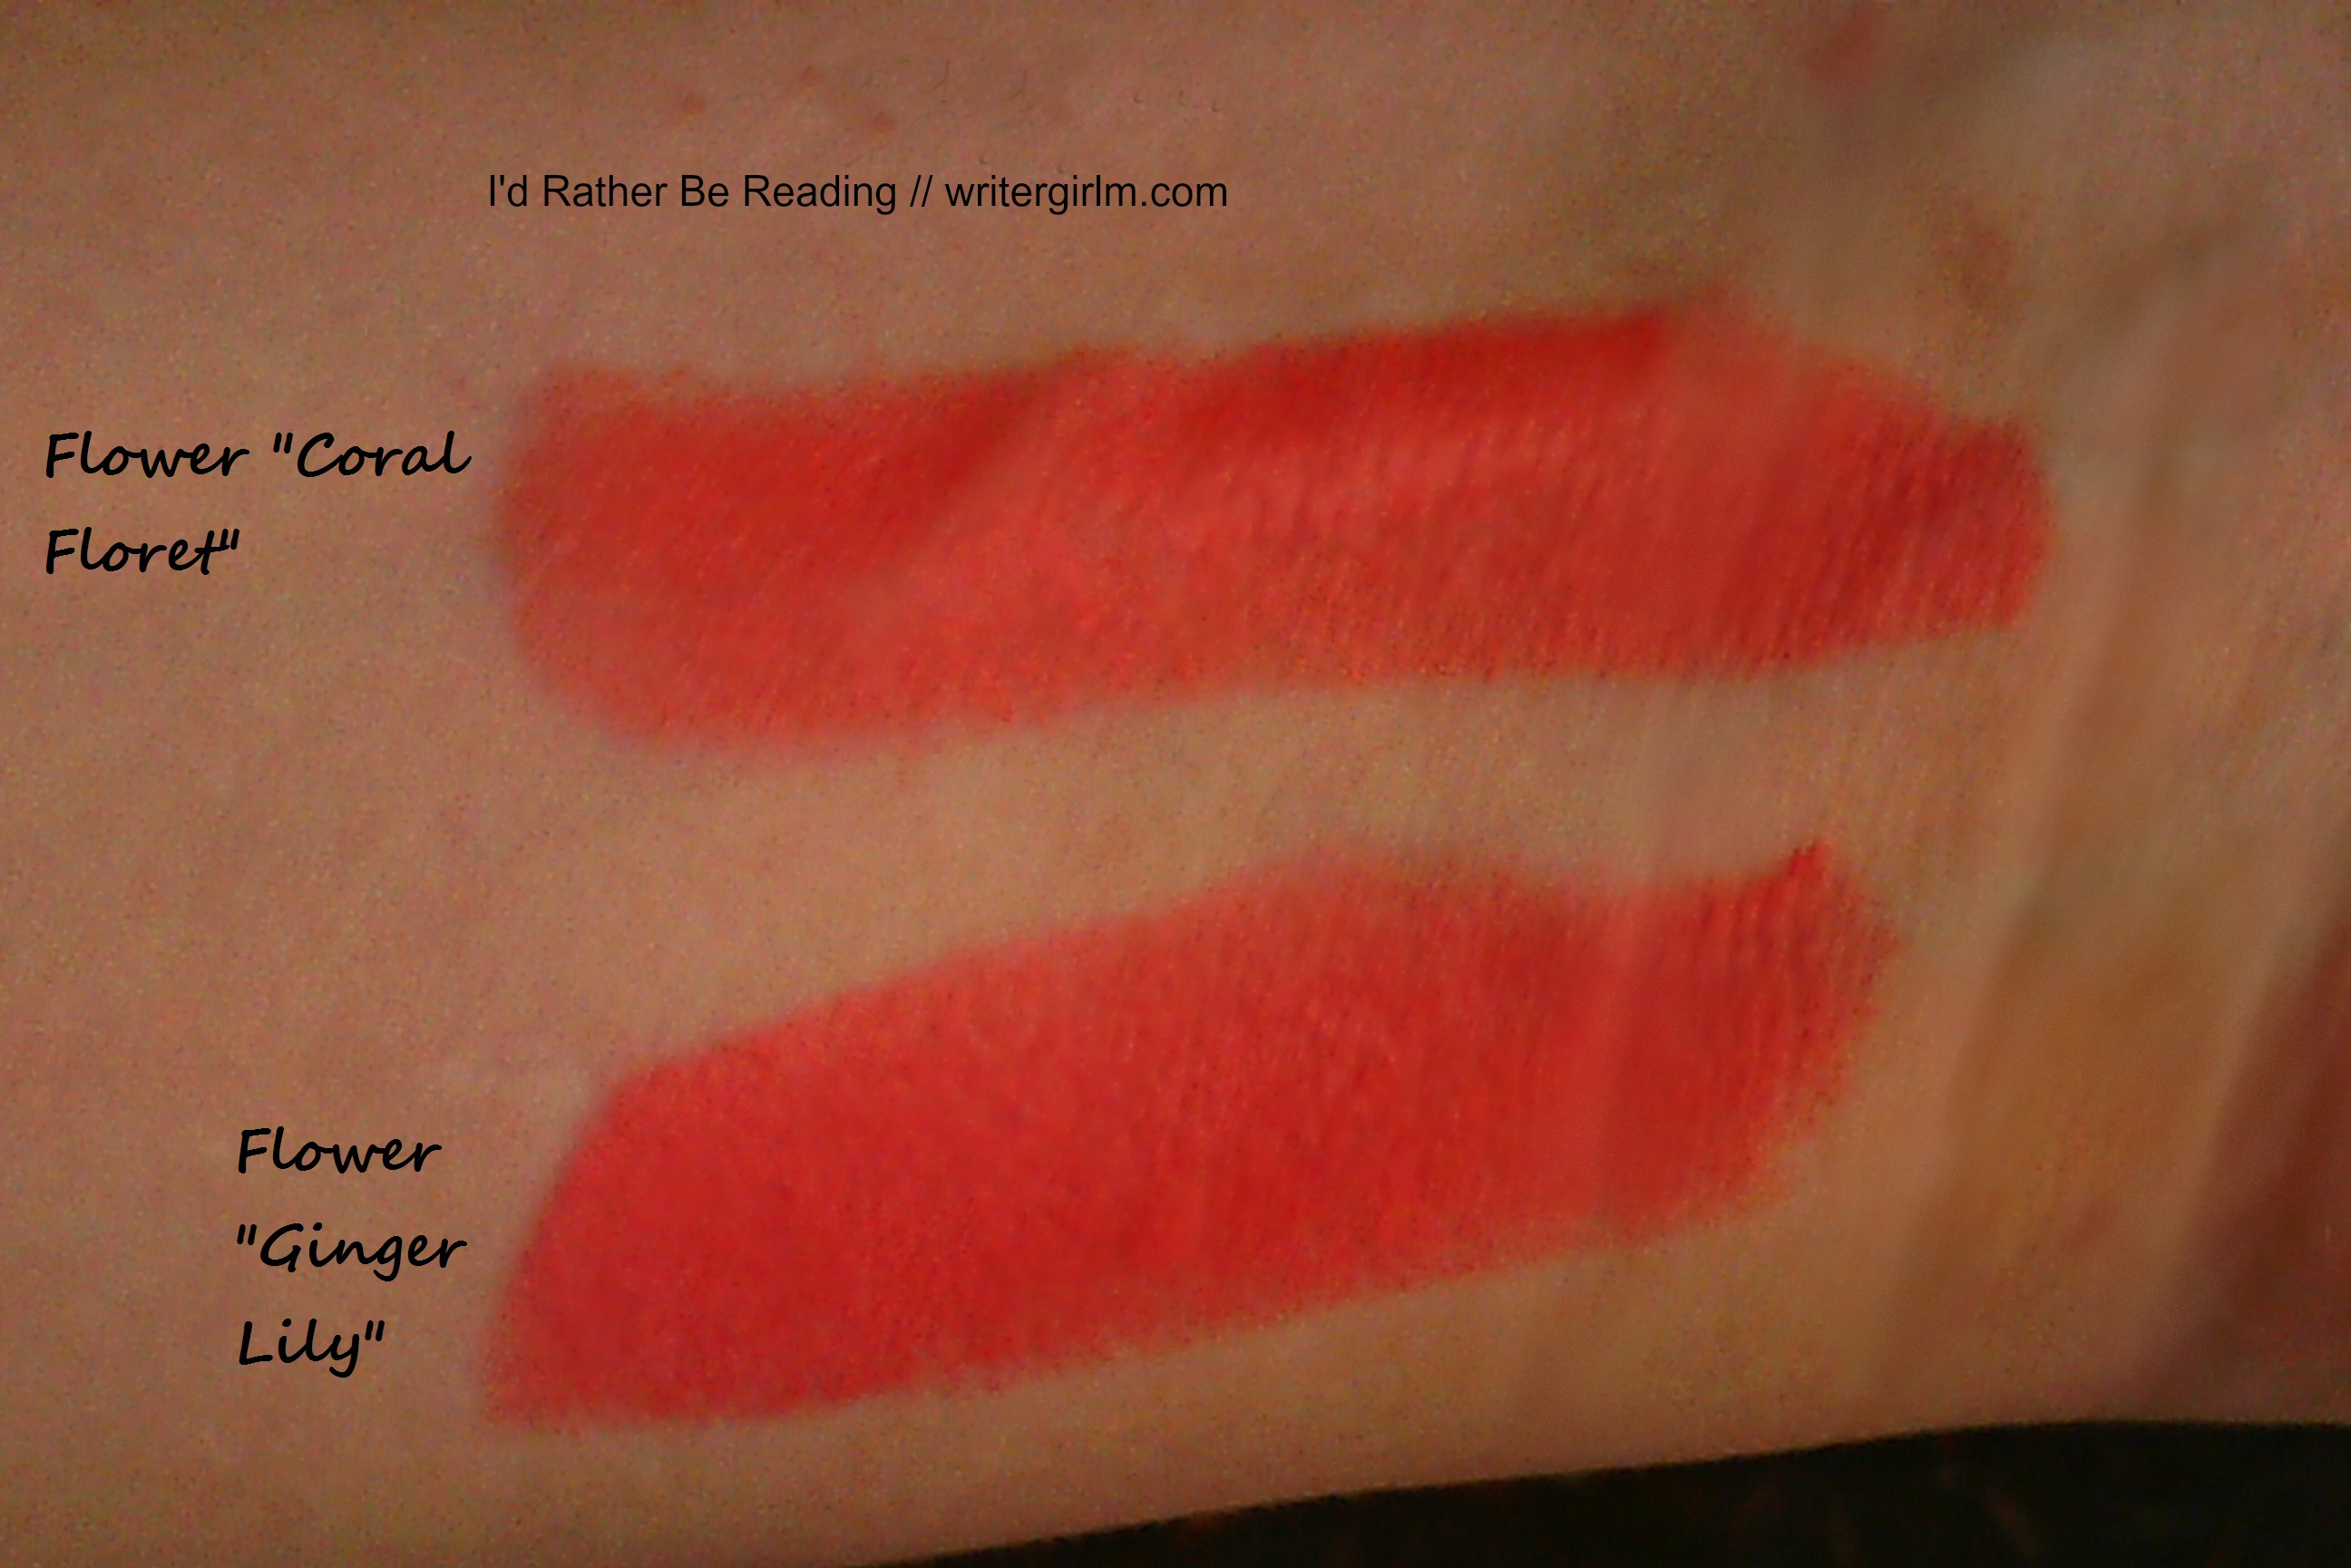 Swatches of Flower Kiss Stick Coral Floret and Ginger Lily